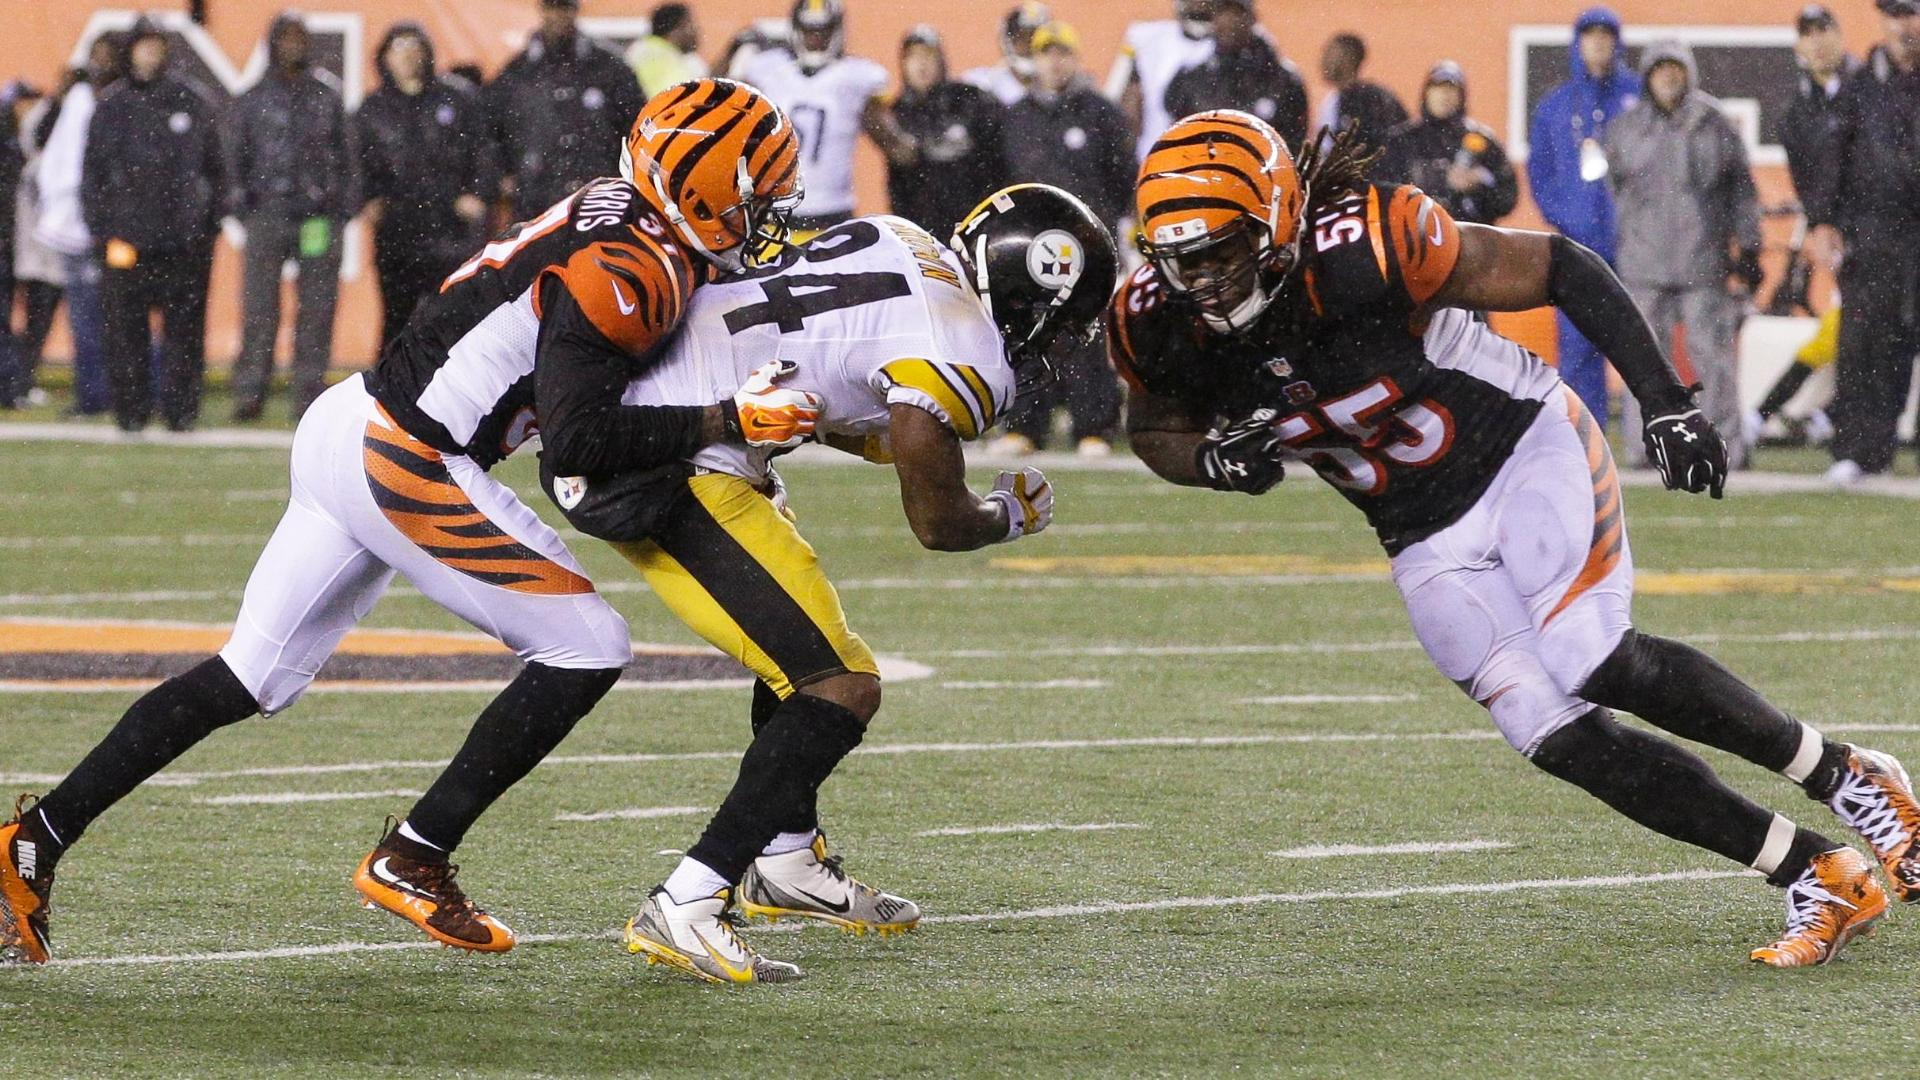 http://a.espncdn.com/media/motion/2016/0110/dm_160110_Steelers_Bengals_Highlight455/dm_160110_Steelers_Bengals_Highlight455.jpg